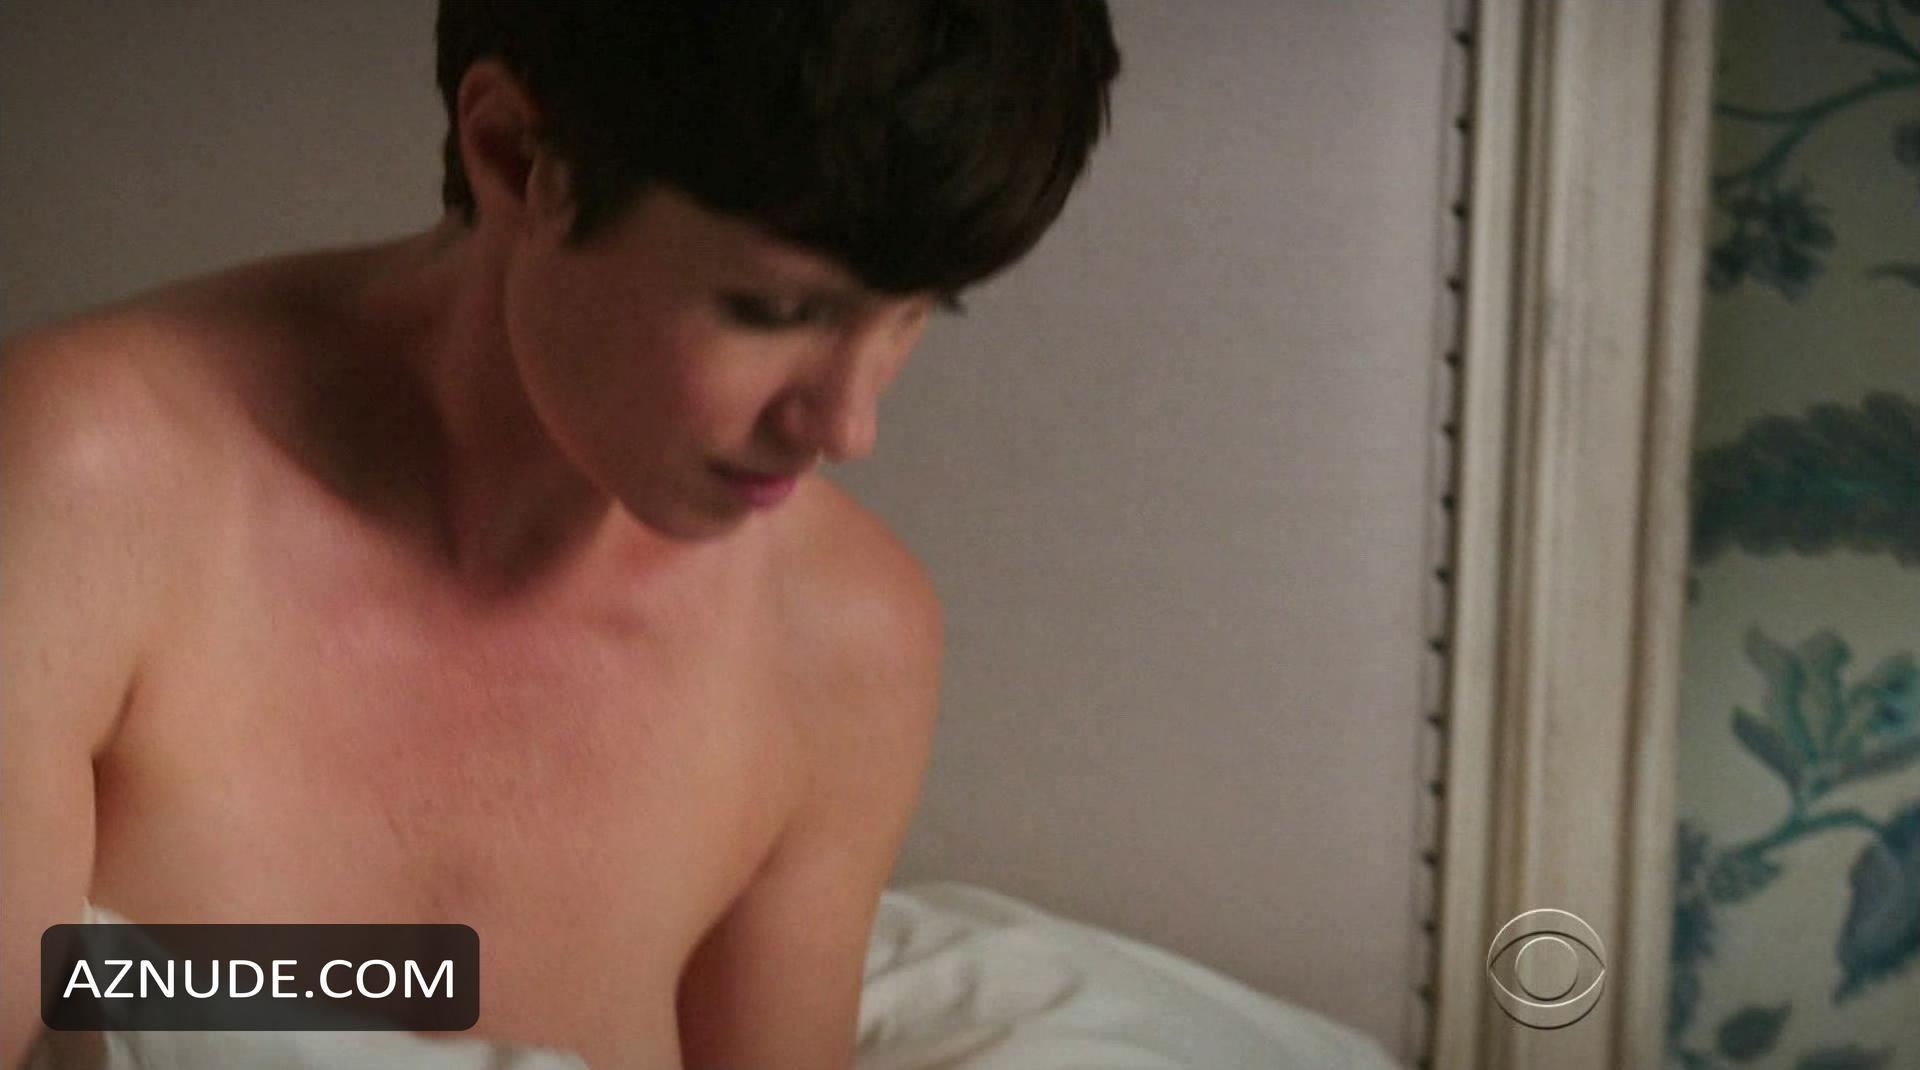 Connor scarlett shirtless sexy nude